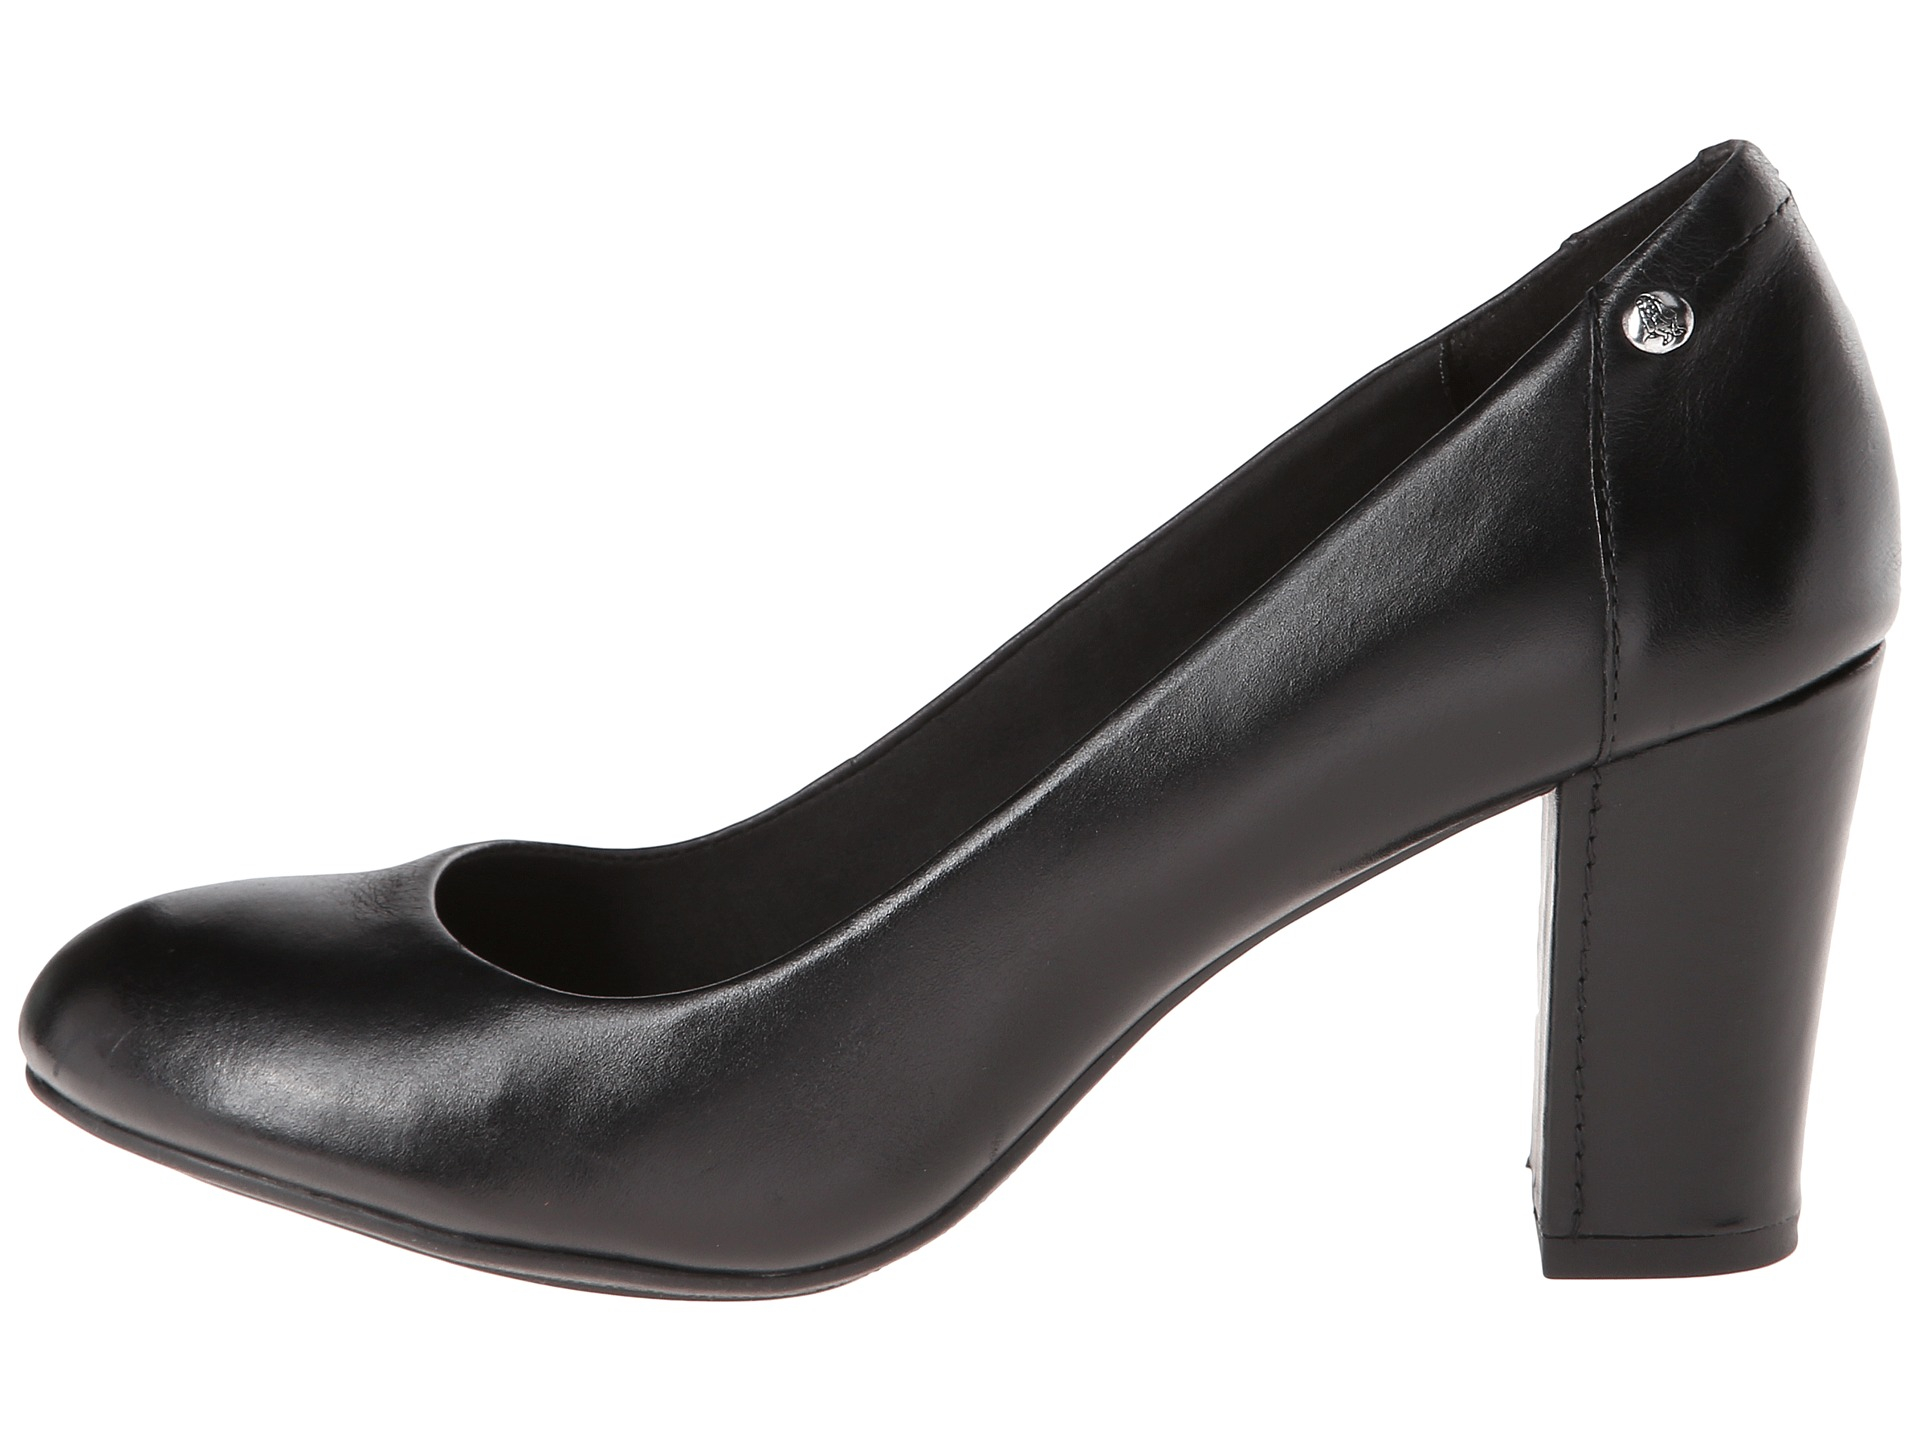 bf236a551291f Hush Puppies Sisany Pump in Black - Lyst